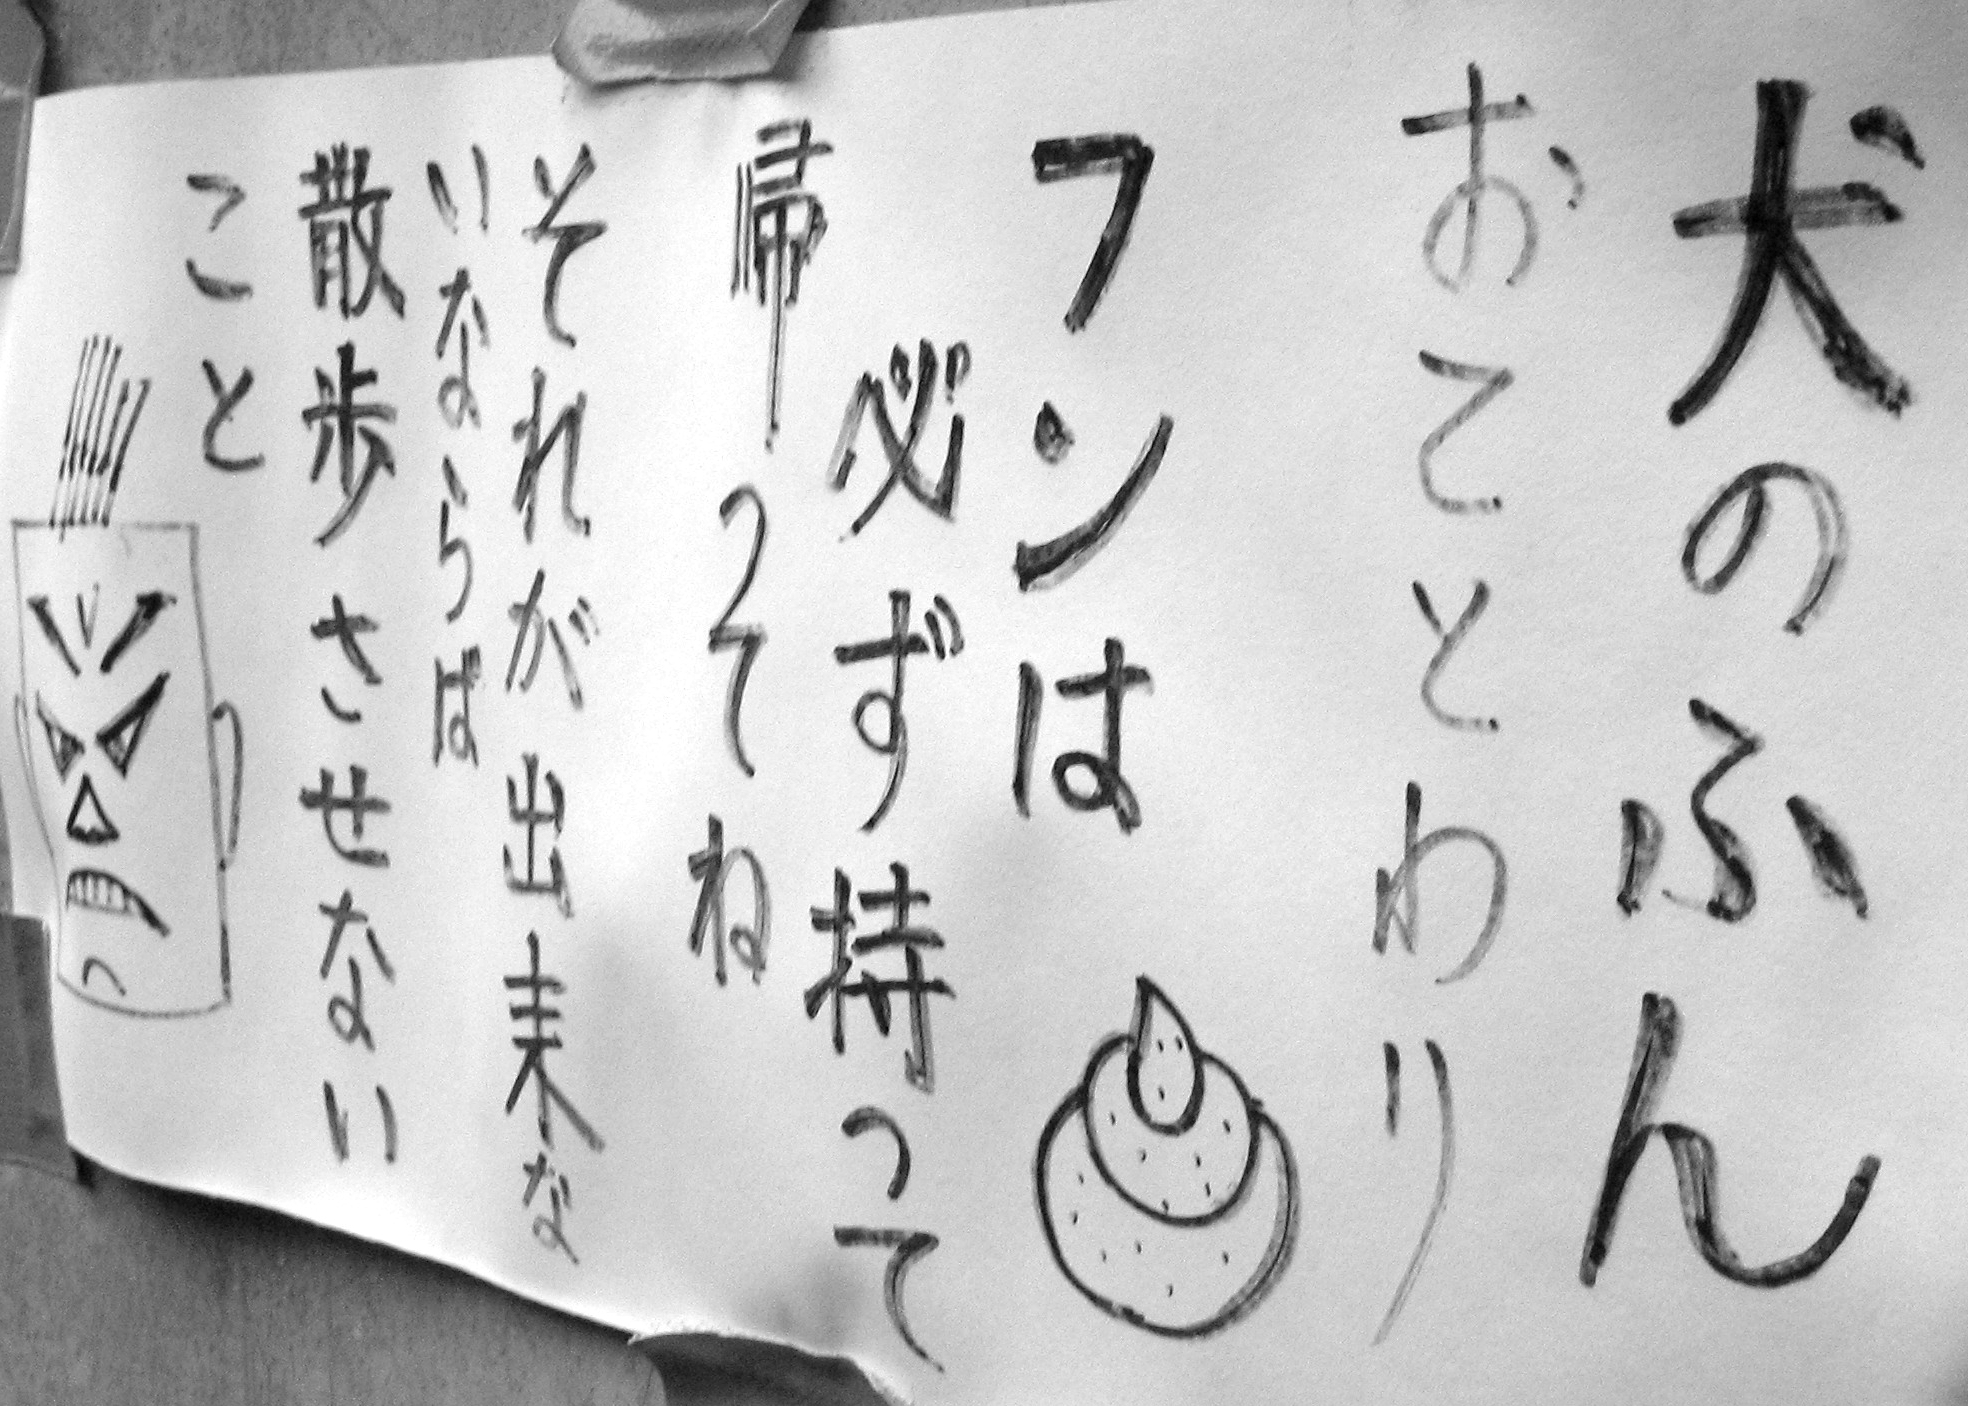 """Neighbor Wars, or... it's not all Zen & Cherry Blossoms in Kyoto.  Rough translation:  """"Dog poo left behind! Poo MUST be picked up and taken with you.  If you can't do this, then don't bother walking (your dog) in the first place!"""